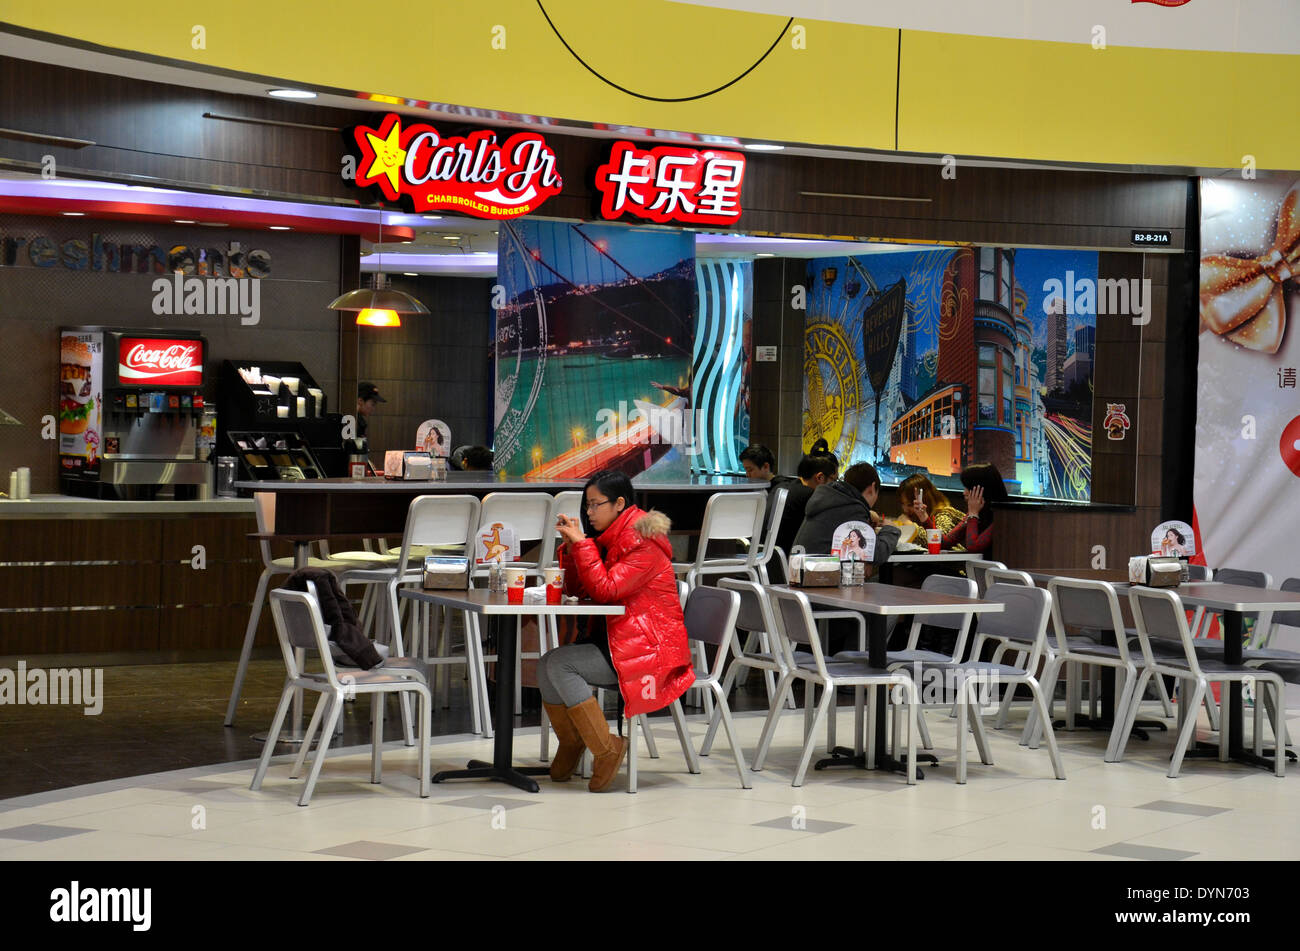 Chinese Girl eats at fast food Carl's Jr restaurant in Shanghai mall China - Stock Image